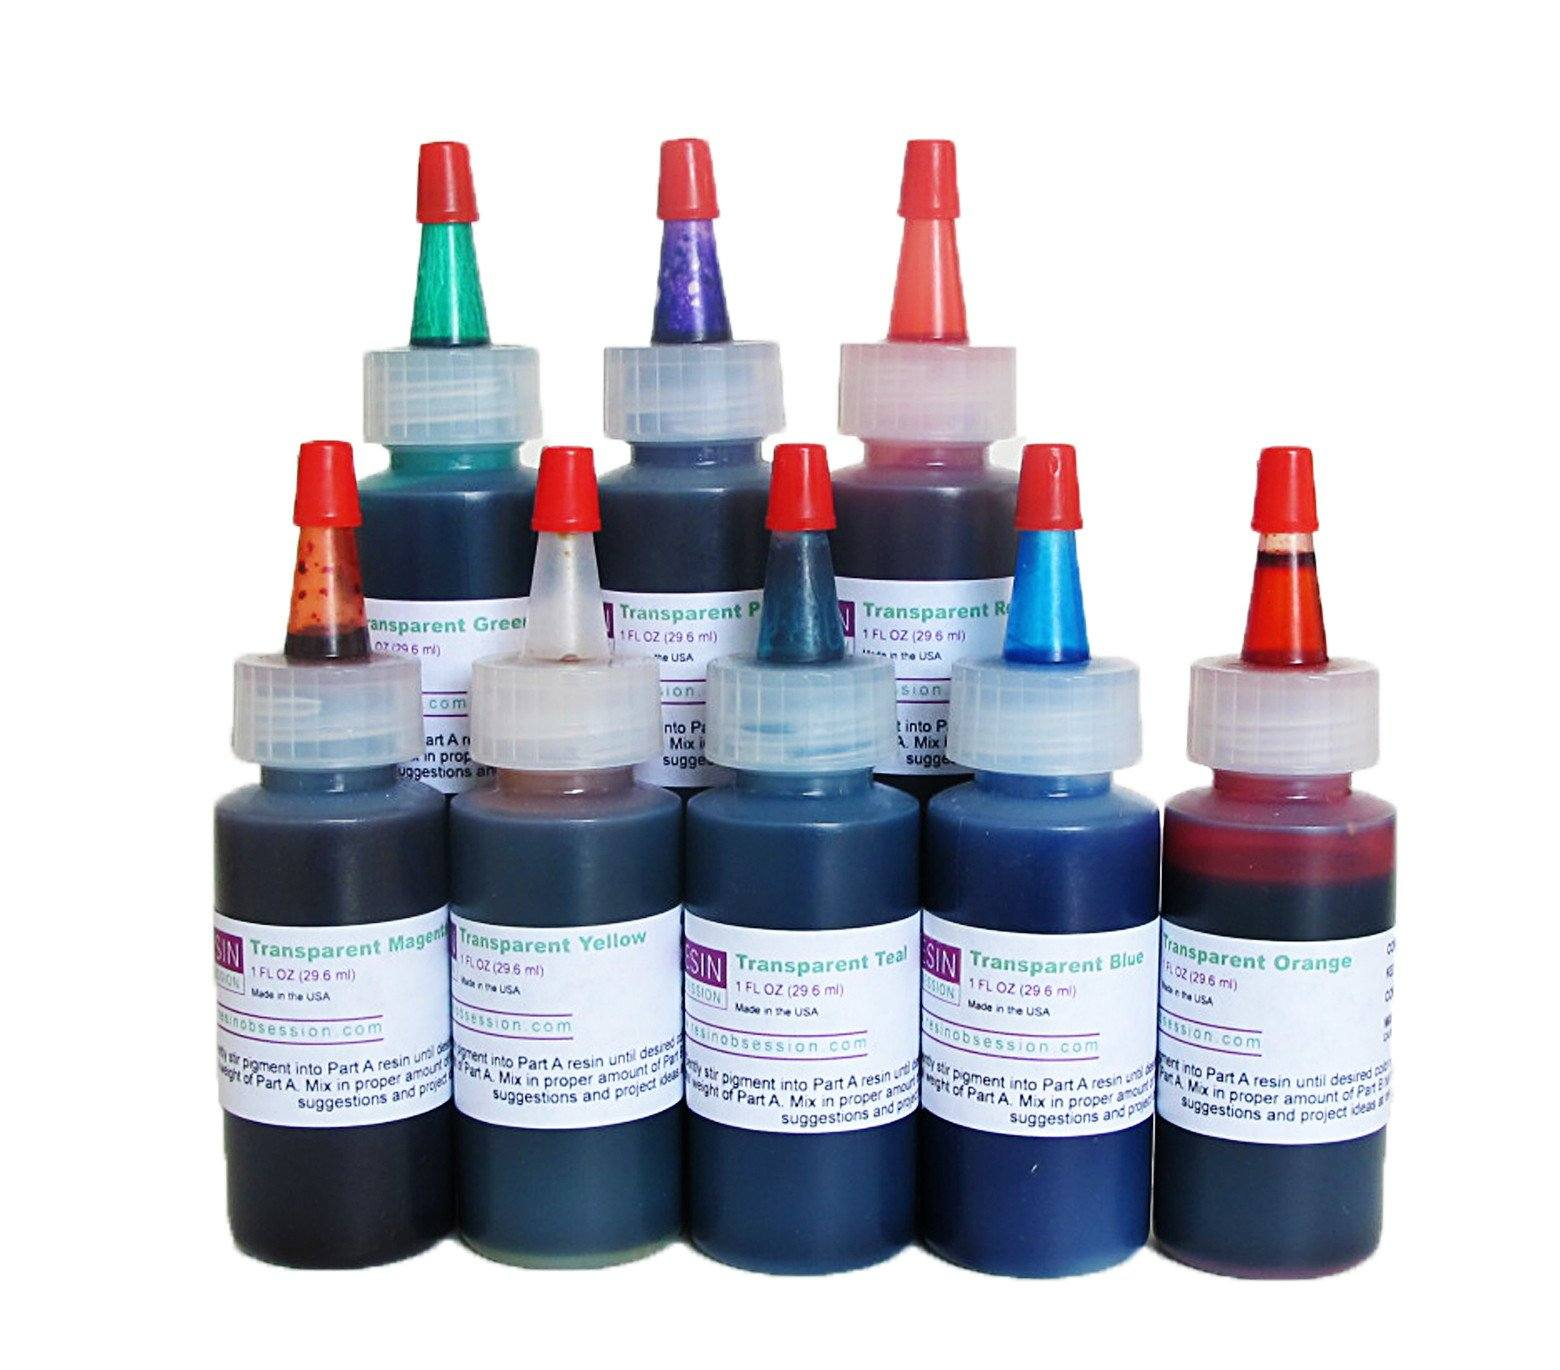 https://www.resinobsession.com/products/resin-obsession-transparent-color-pigments-complete-set-of-eight-colors/